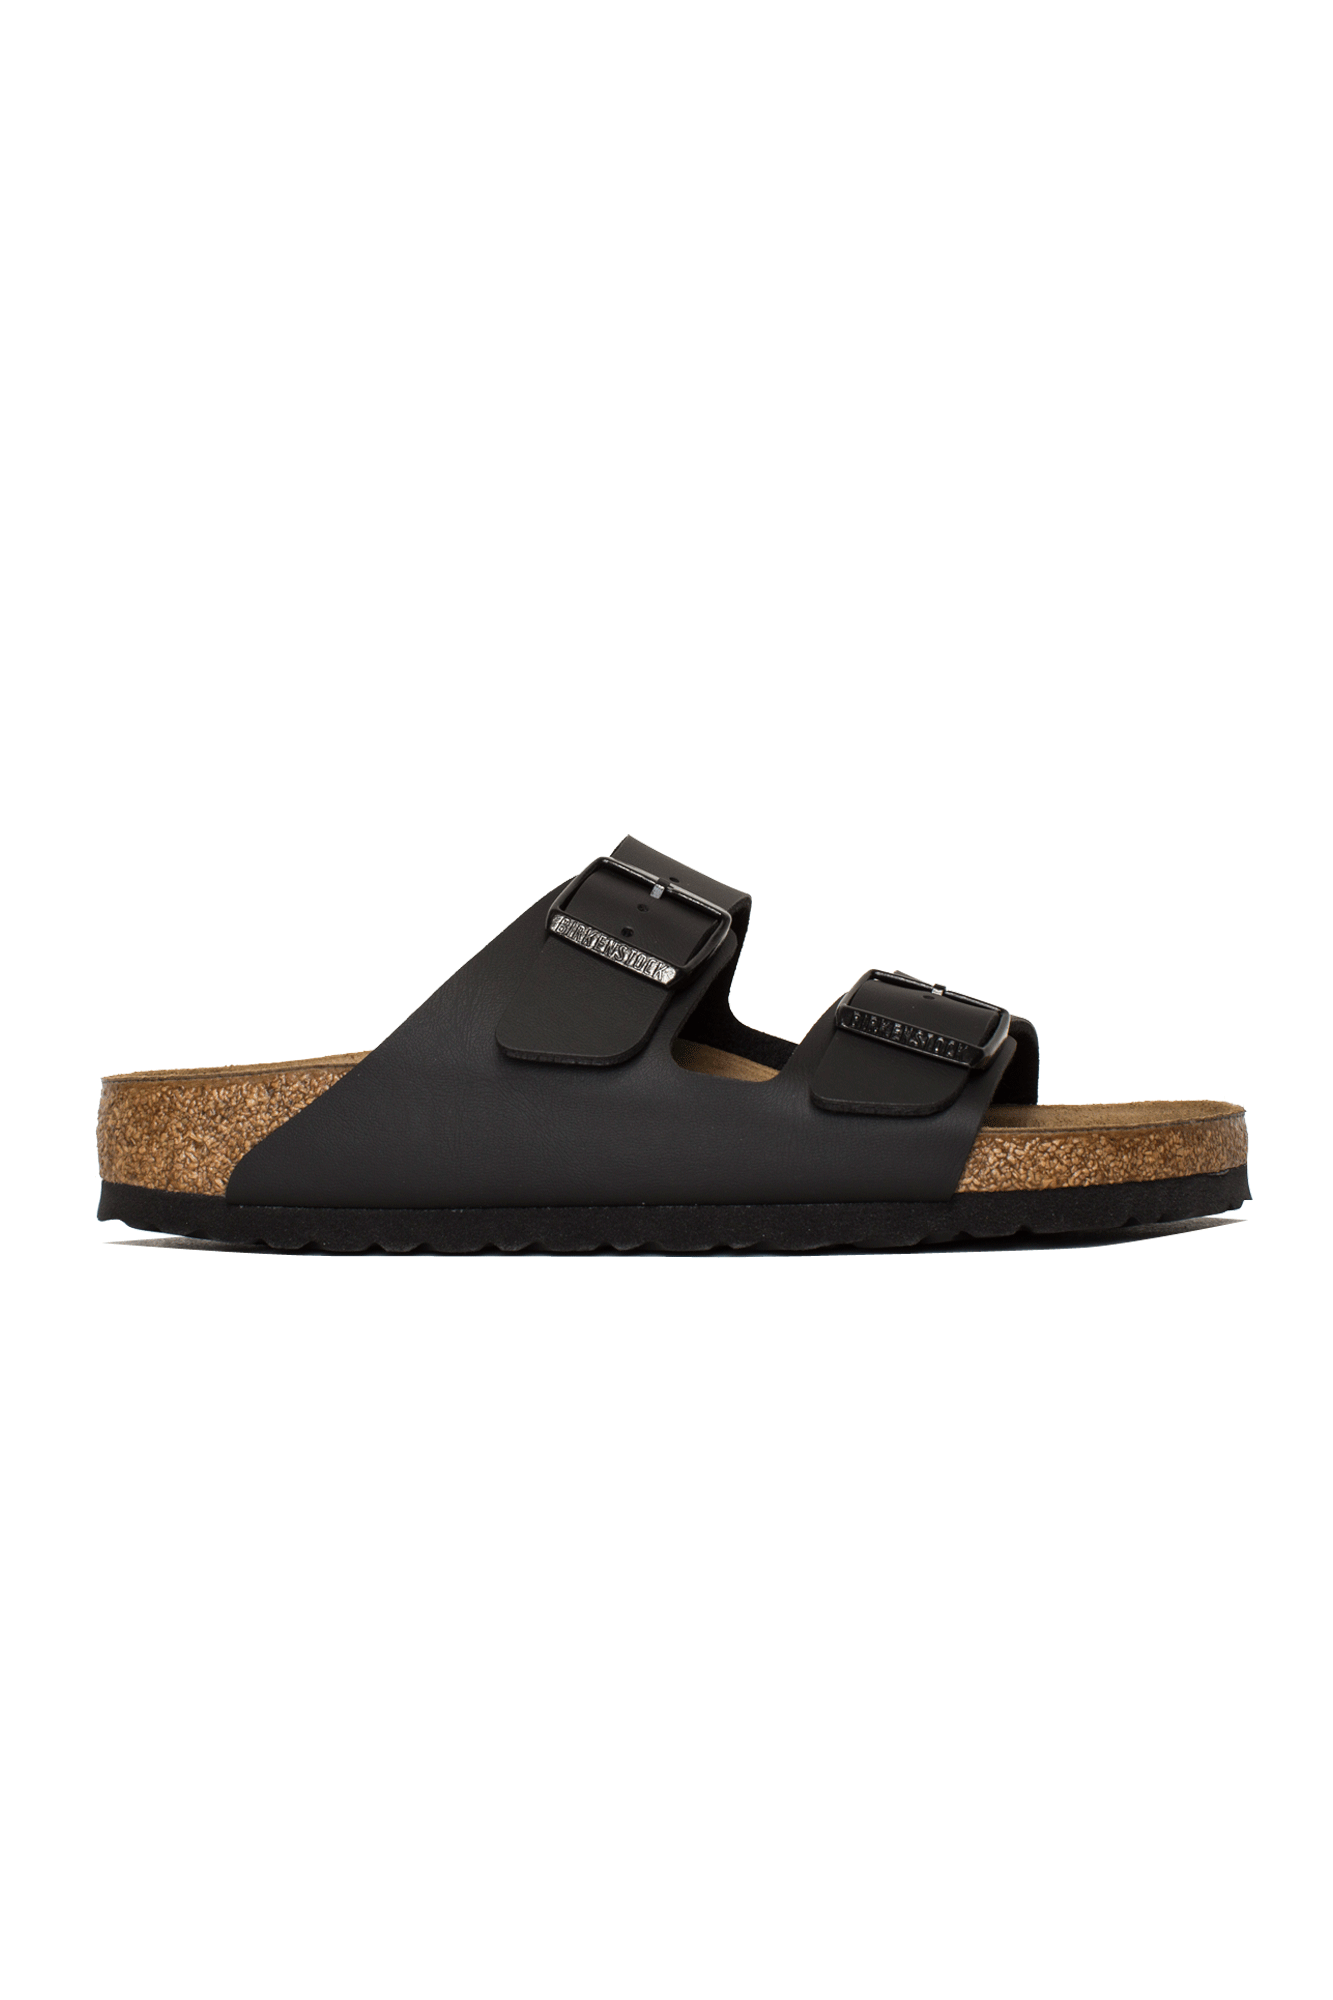 Birkenstock Sandals & Slides Arizona Black 051793#000#BLK#4 - One Block Down